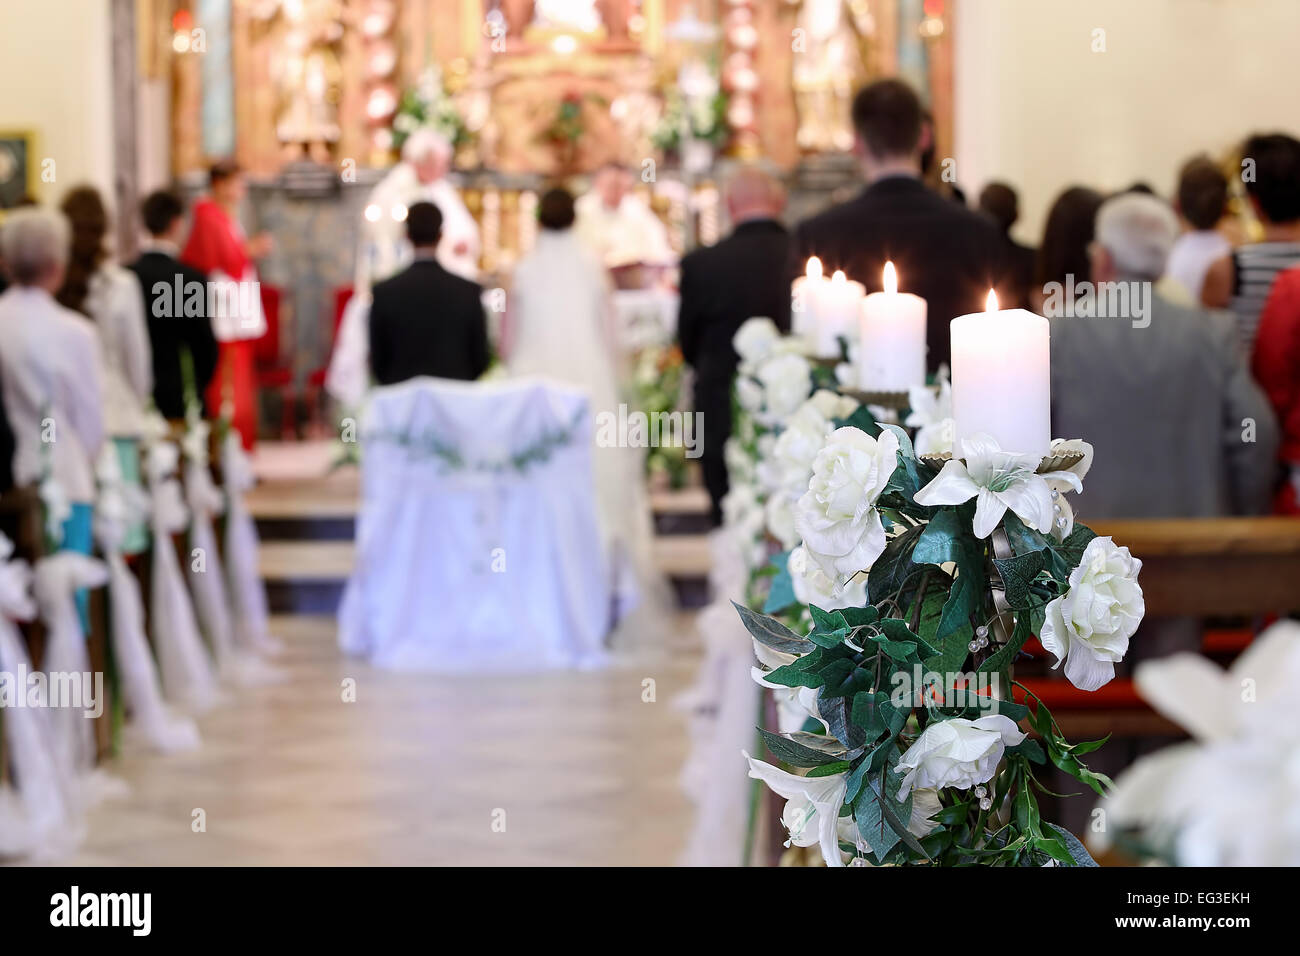 Young Couple During The Wedding Ceremony Before Altar In A Church Full Of People